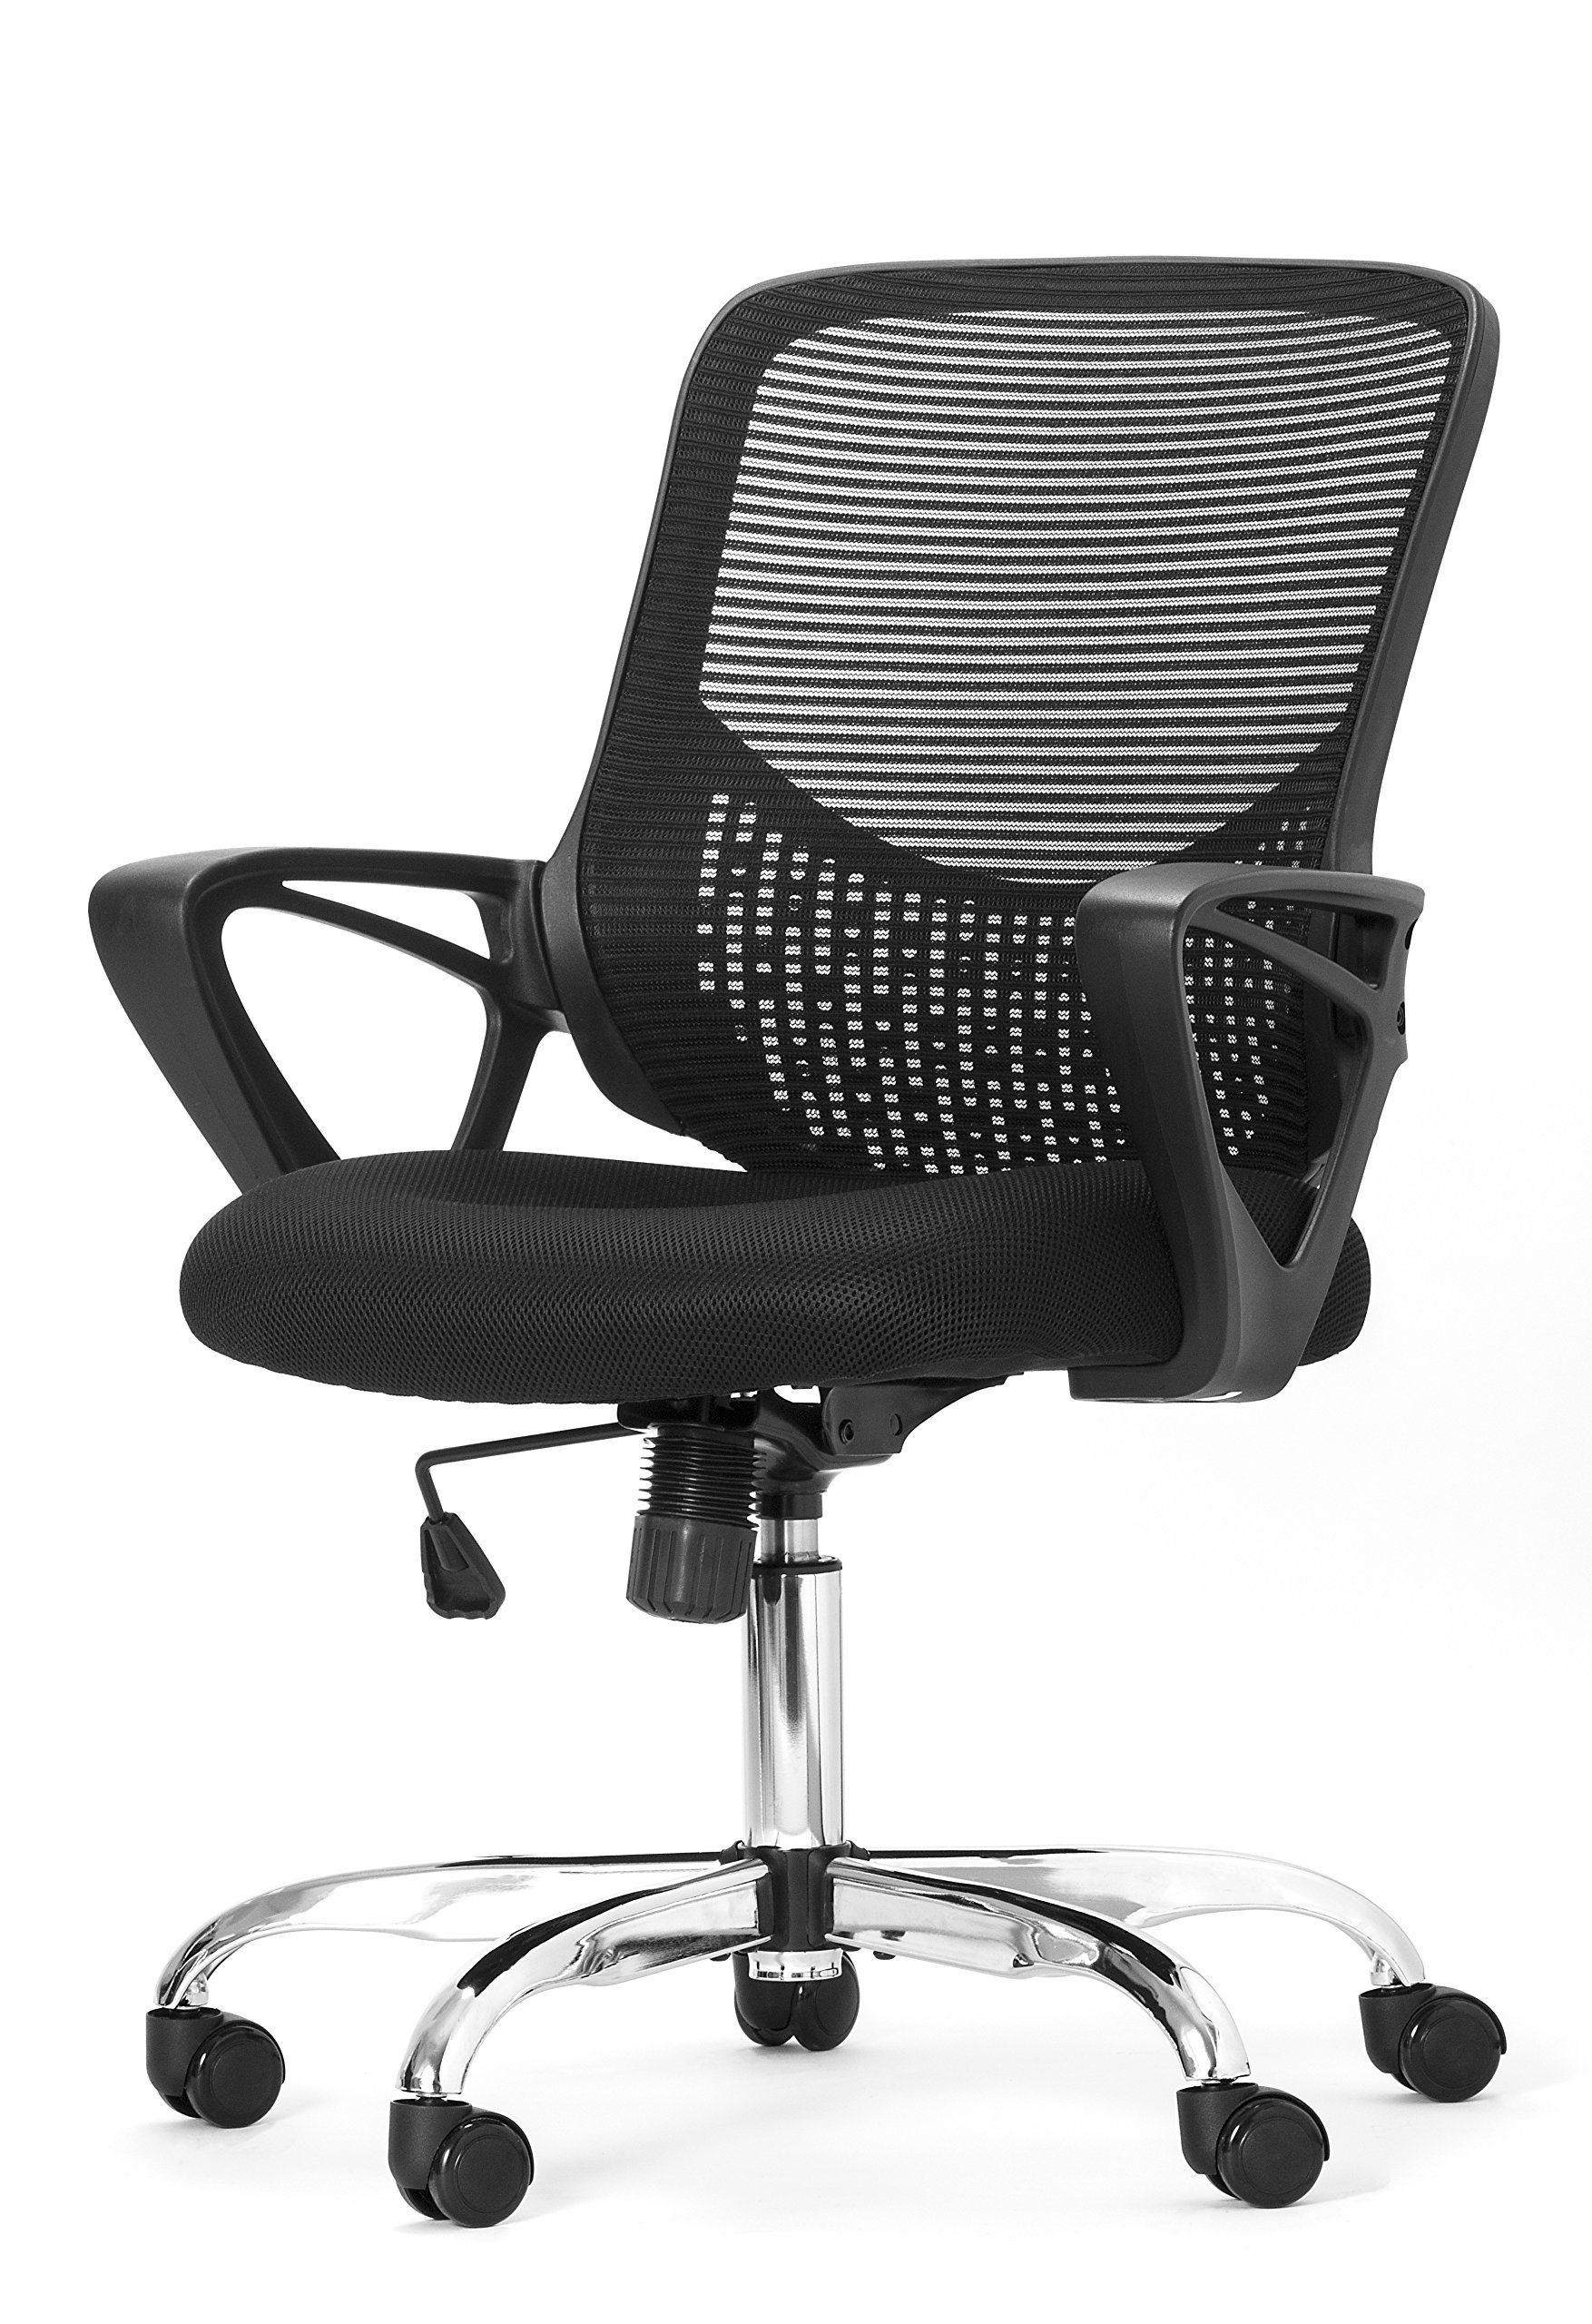 OFFICE FACTOR Mesh Back Office Chair, Adjustable Ventilated Mesh Chair, Breathable Office Chair With Tilt & Swivel Mechanism, High Mesh Back Executive Chair PU Casters 250 Lbs Rated